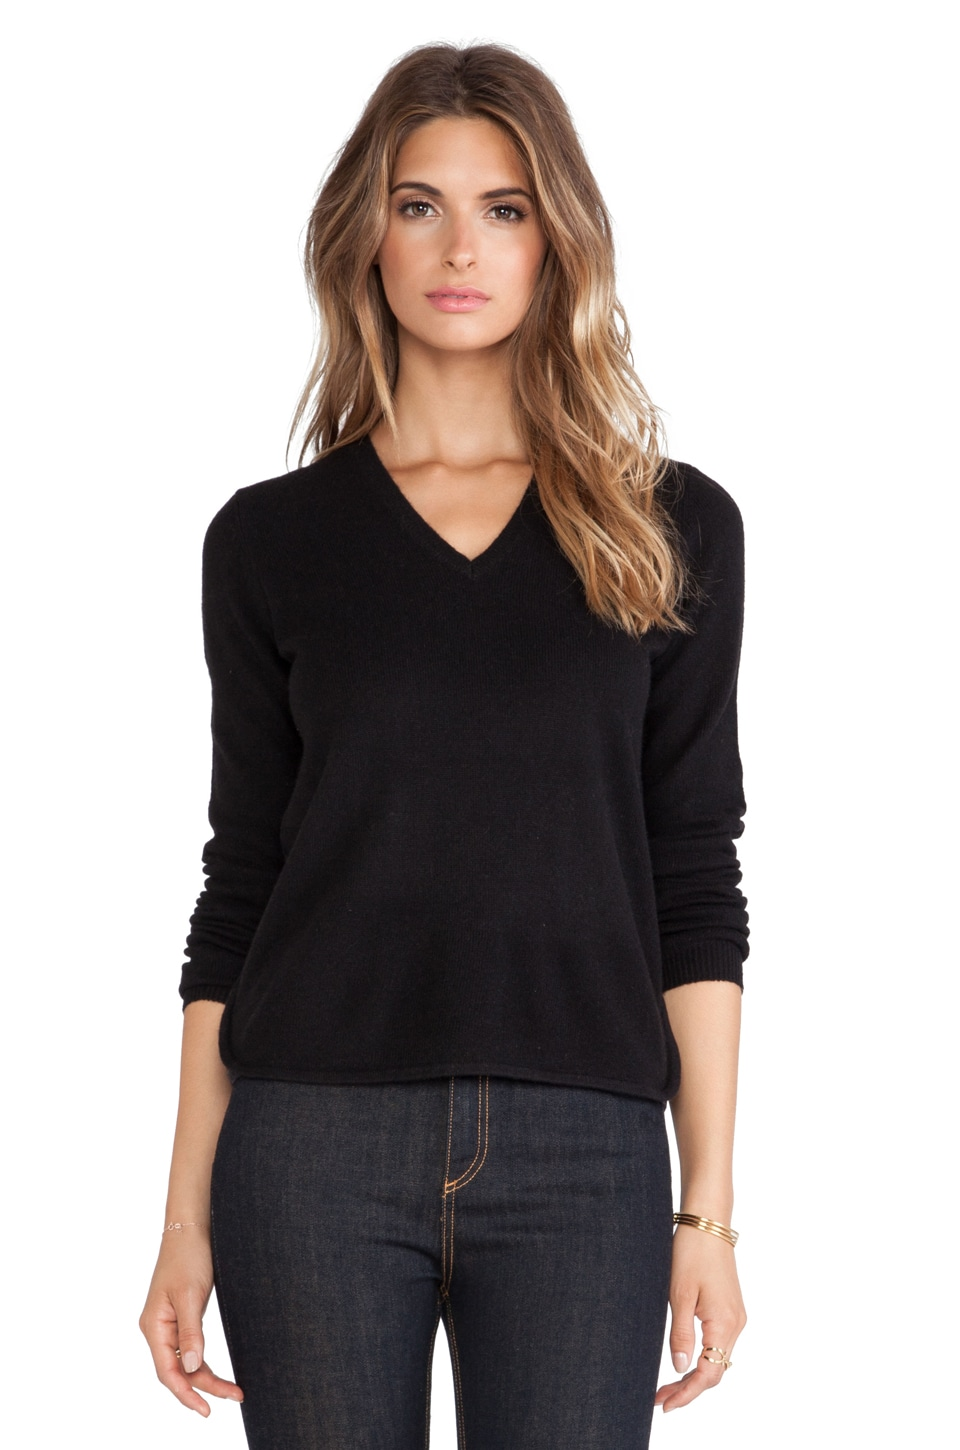 White + Warren Curve Hem V Neck Sweater in Black & Carbon